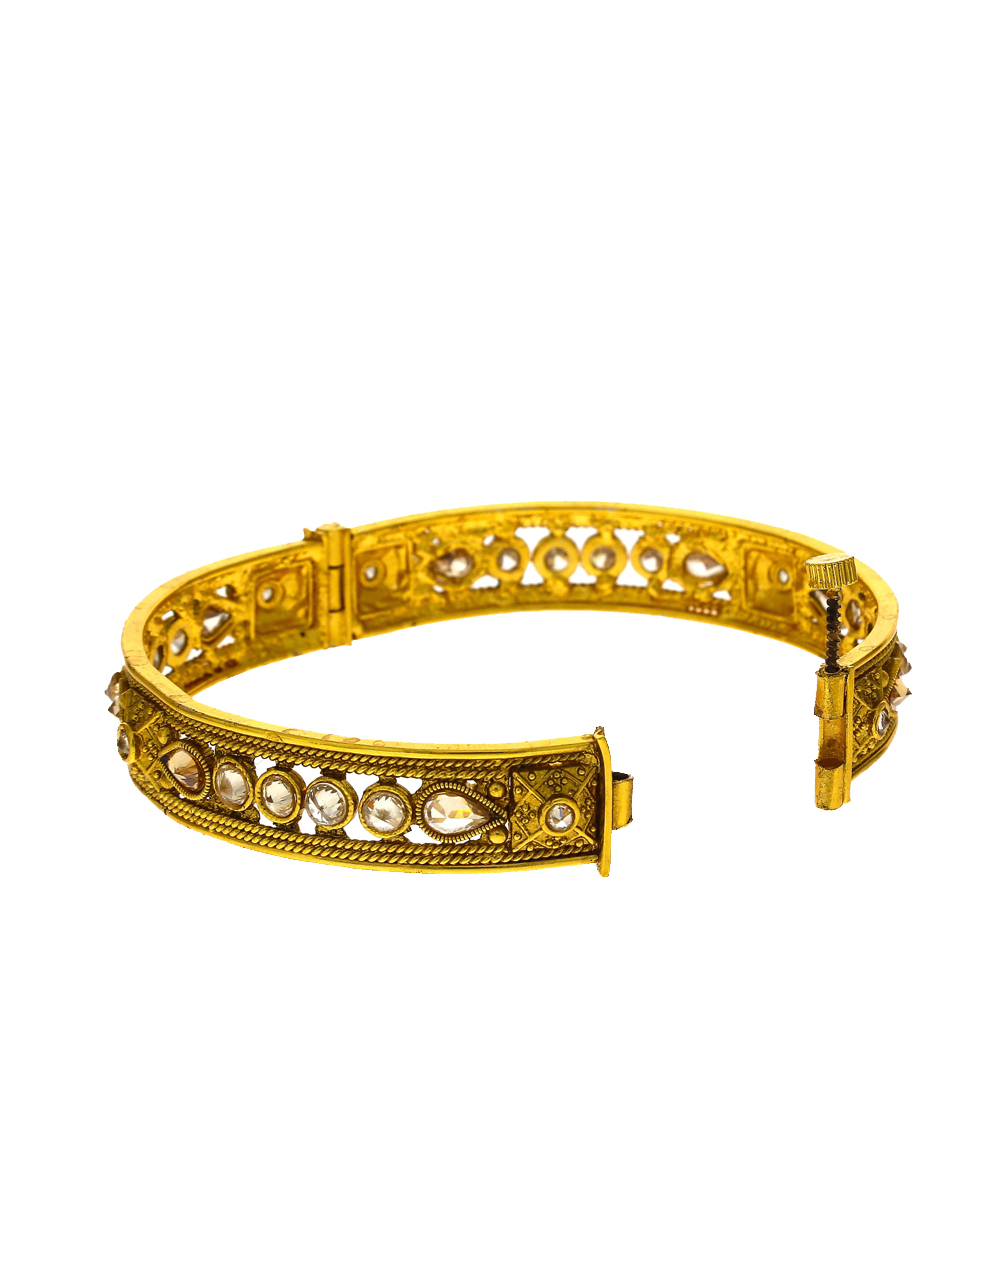 Adorable Golden Finish Encrusted With LCT Stone Traditional Bangles For Women Online.